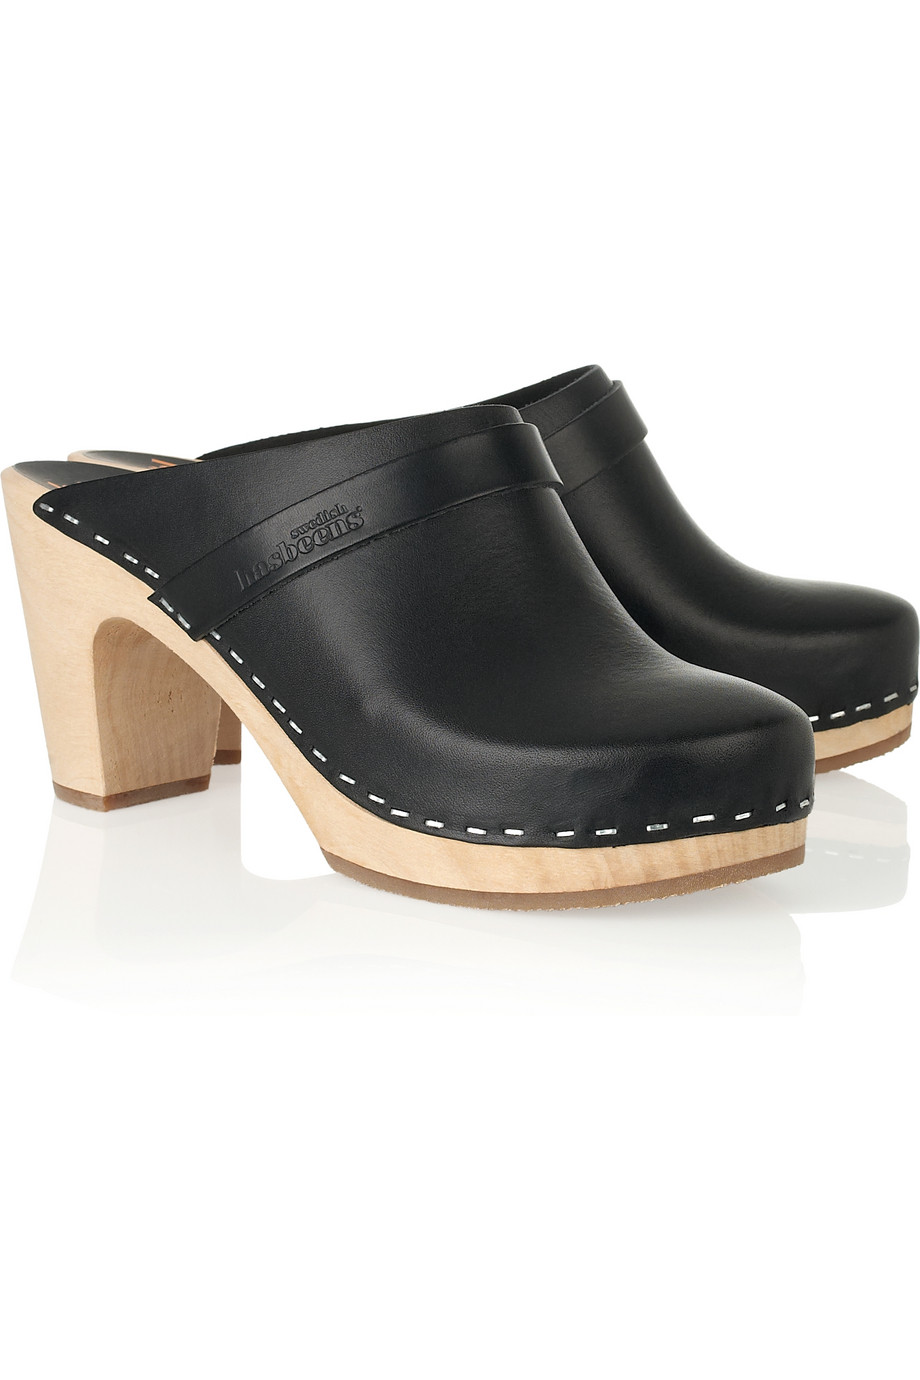 Swedish Hasbeens Super High Leather Clogs In Black Lyst